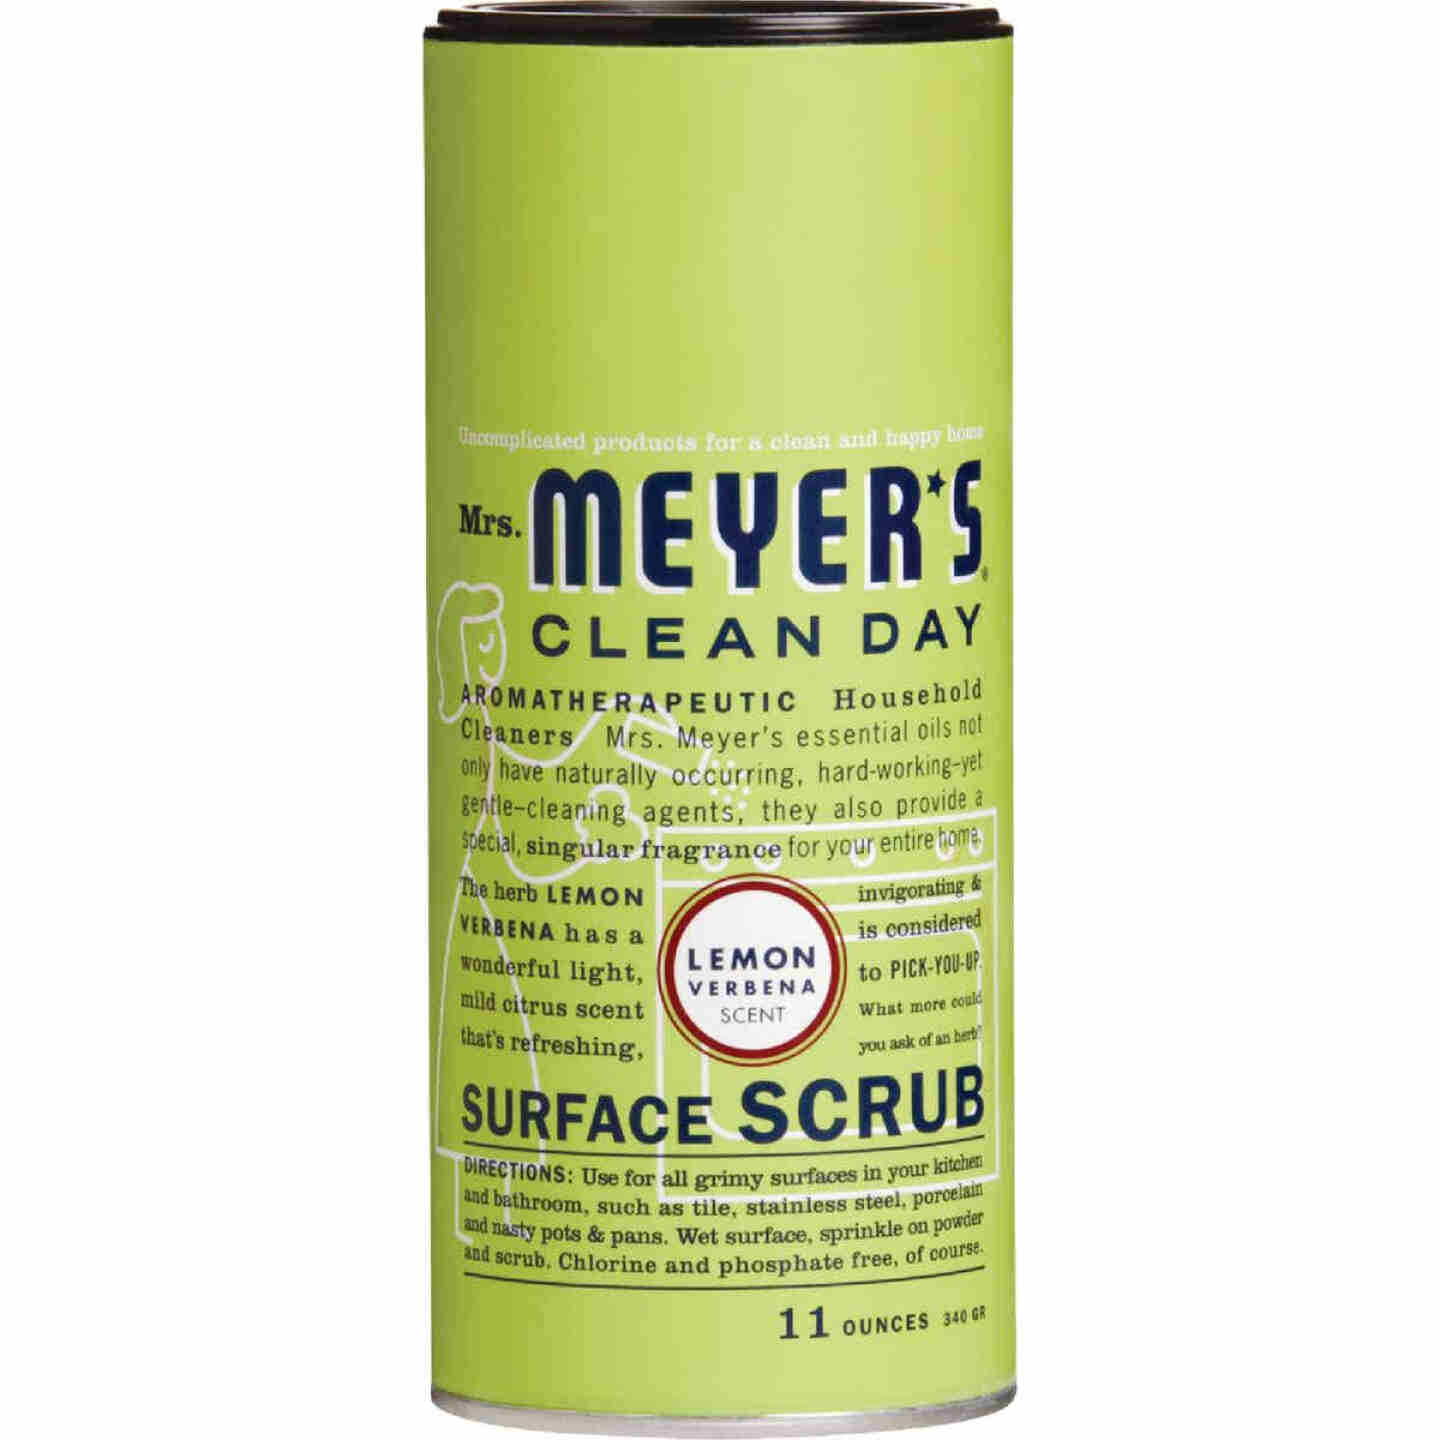 Mrs. Meyer's Clean Day 11 Oz. Surface Scrub Cleanser Image 1